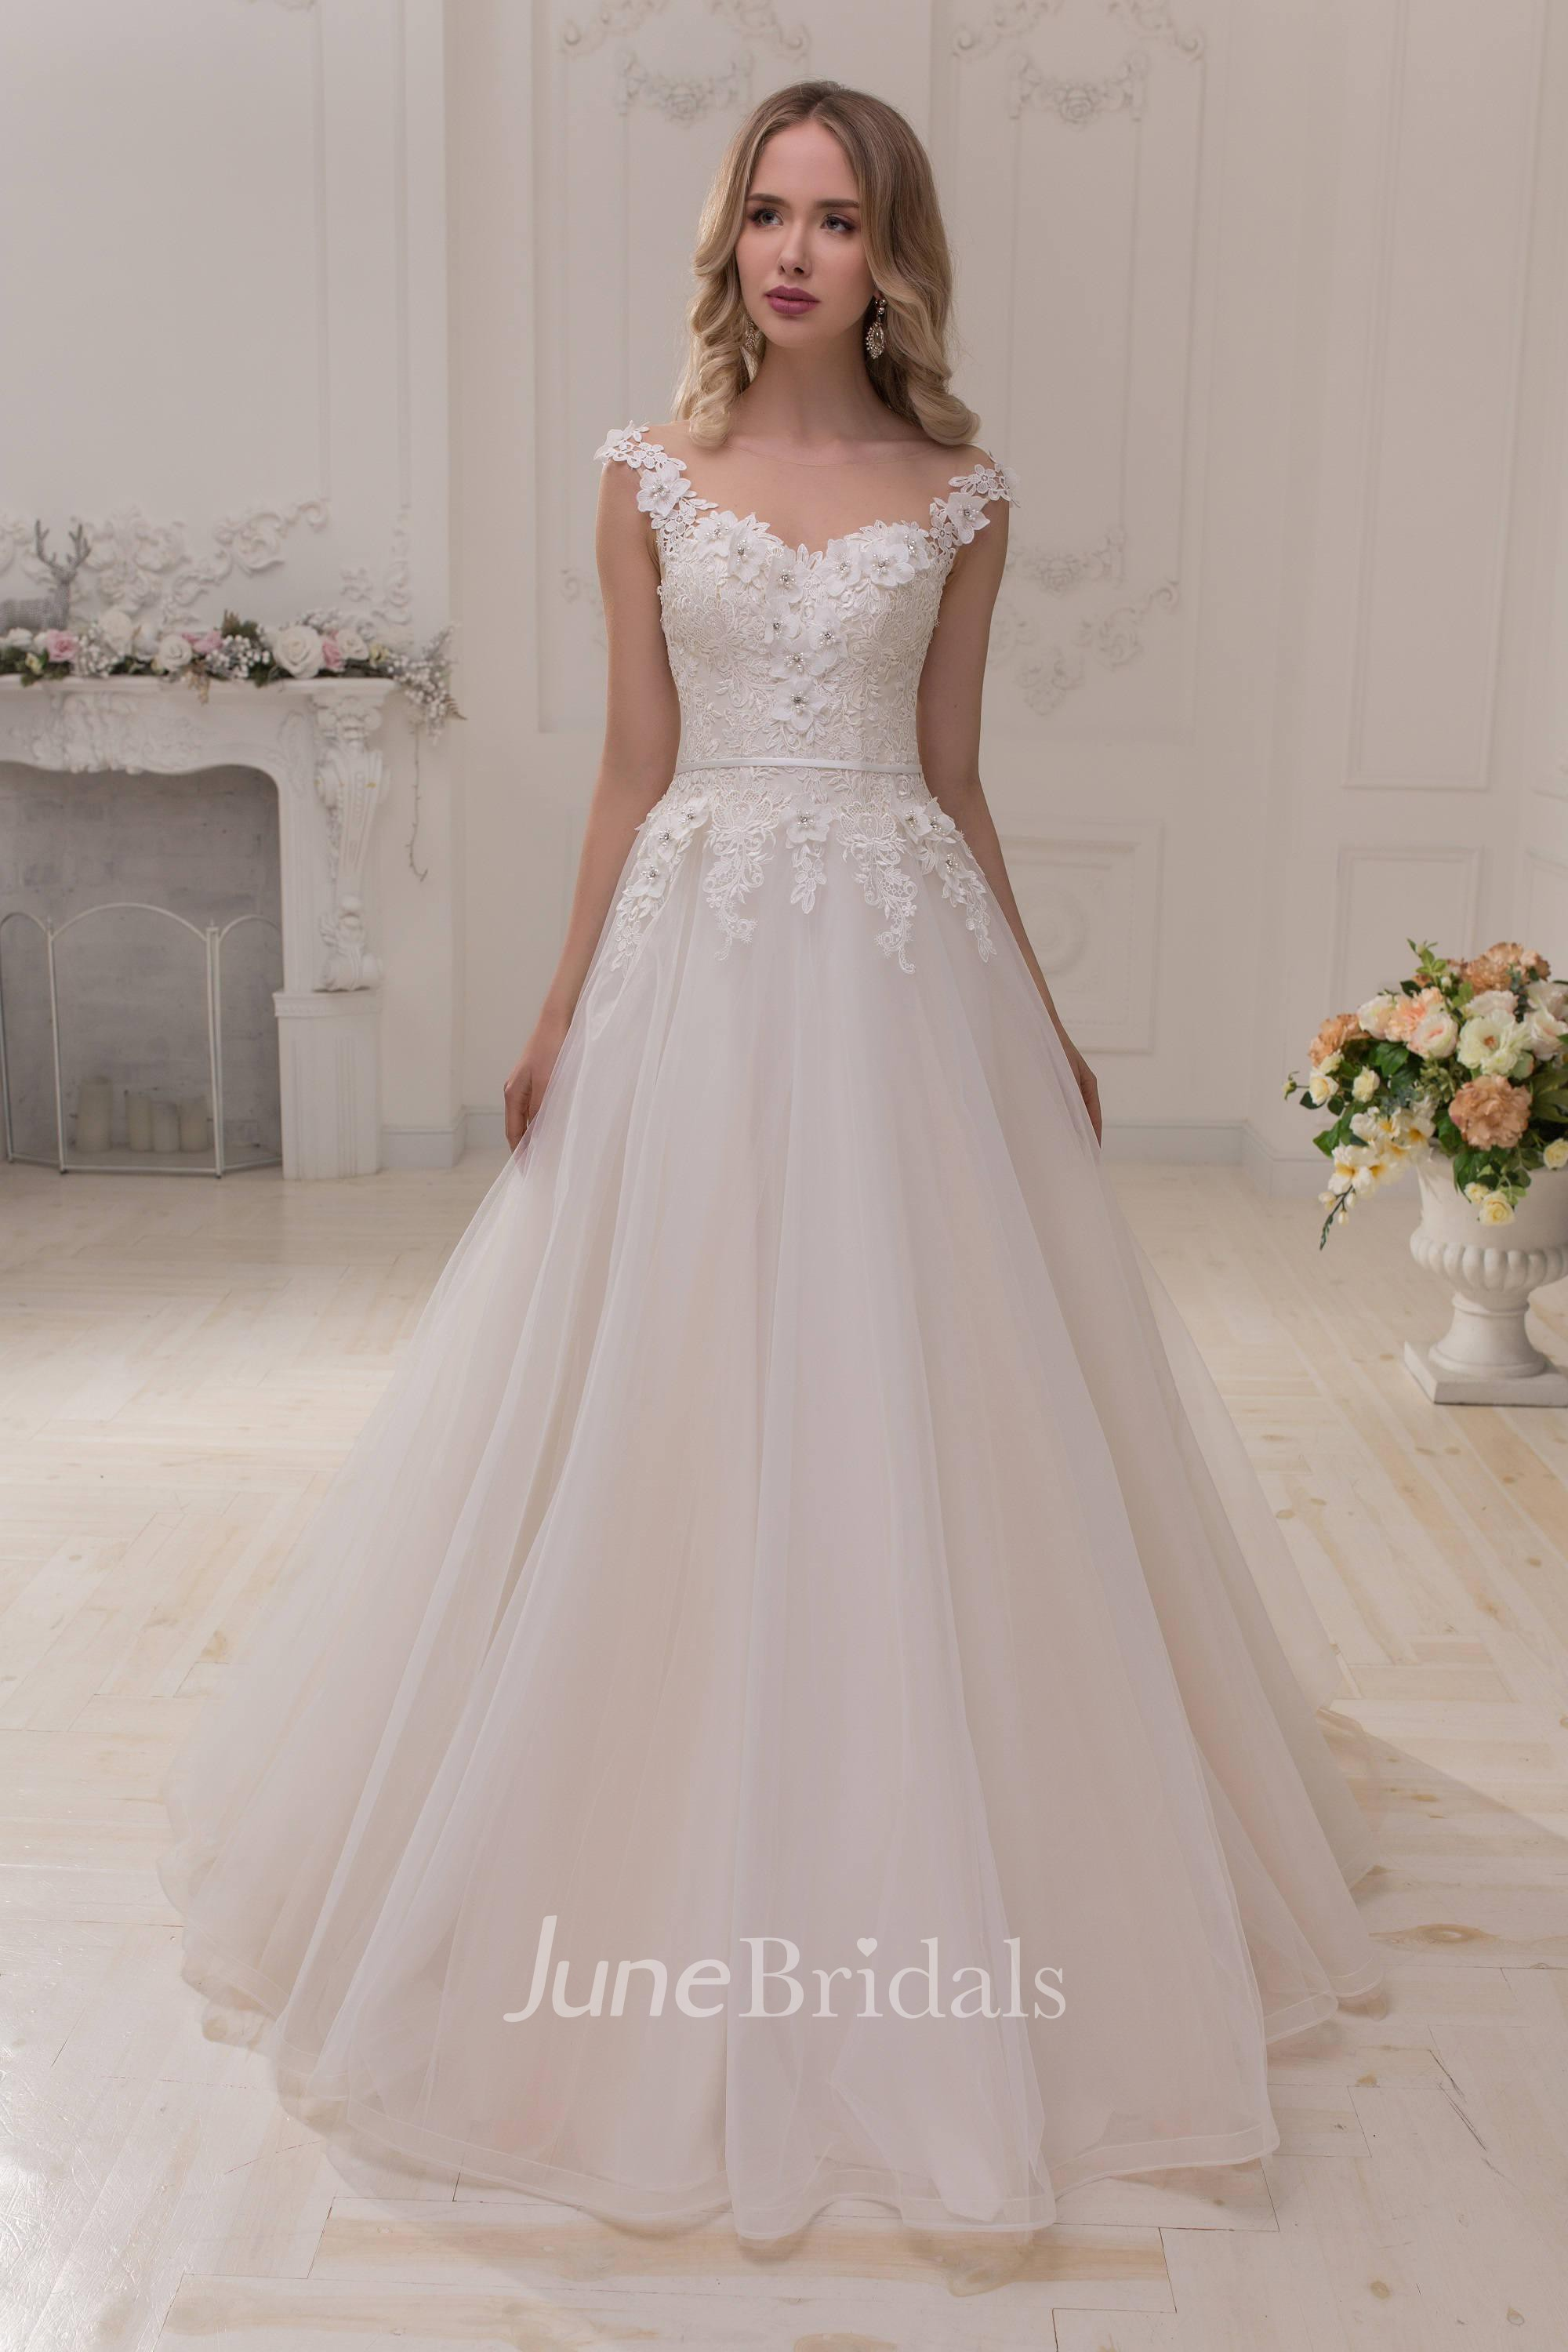 Scoop-Neck Cap-Sleeve A-Line Tulle Ball Gown Wedding Dress ...